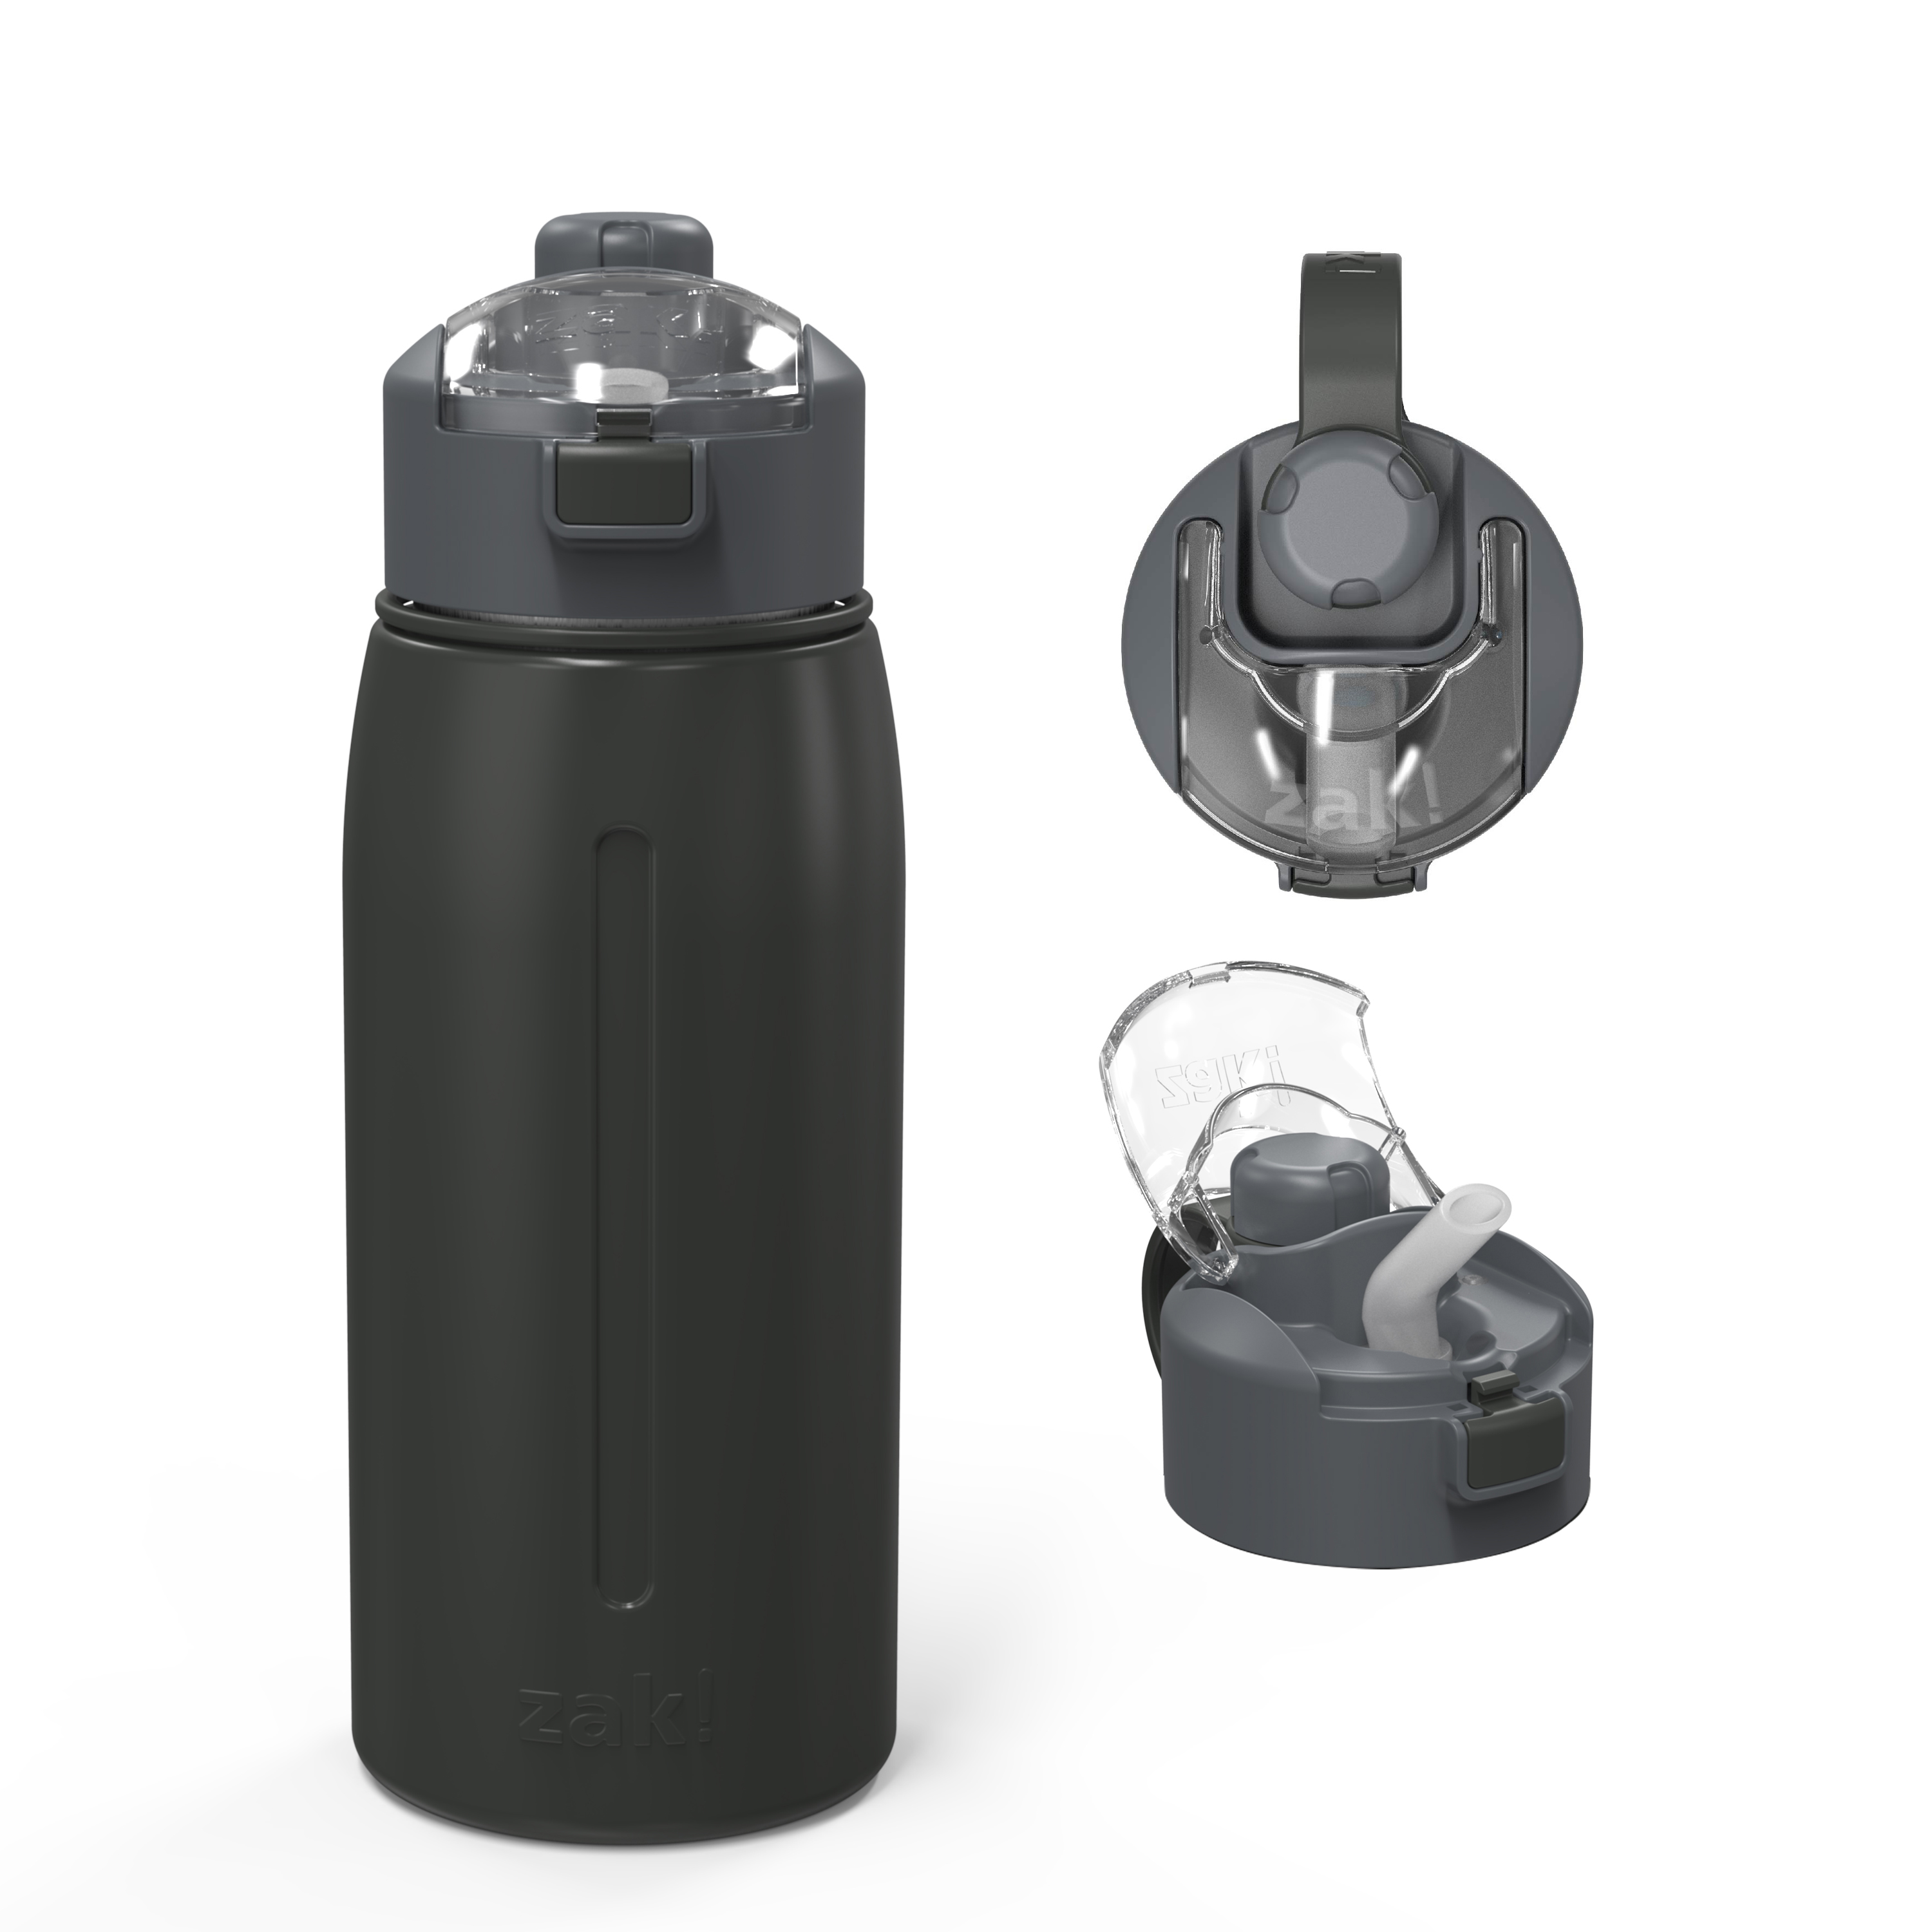 Genesis 24 ounce Vacuum Insulated Stainless Steel Tumbler, Charcoal slideshow image 2